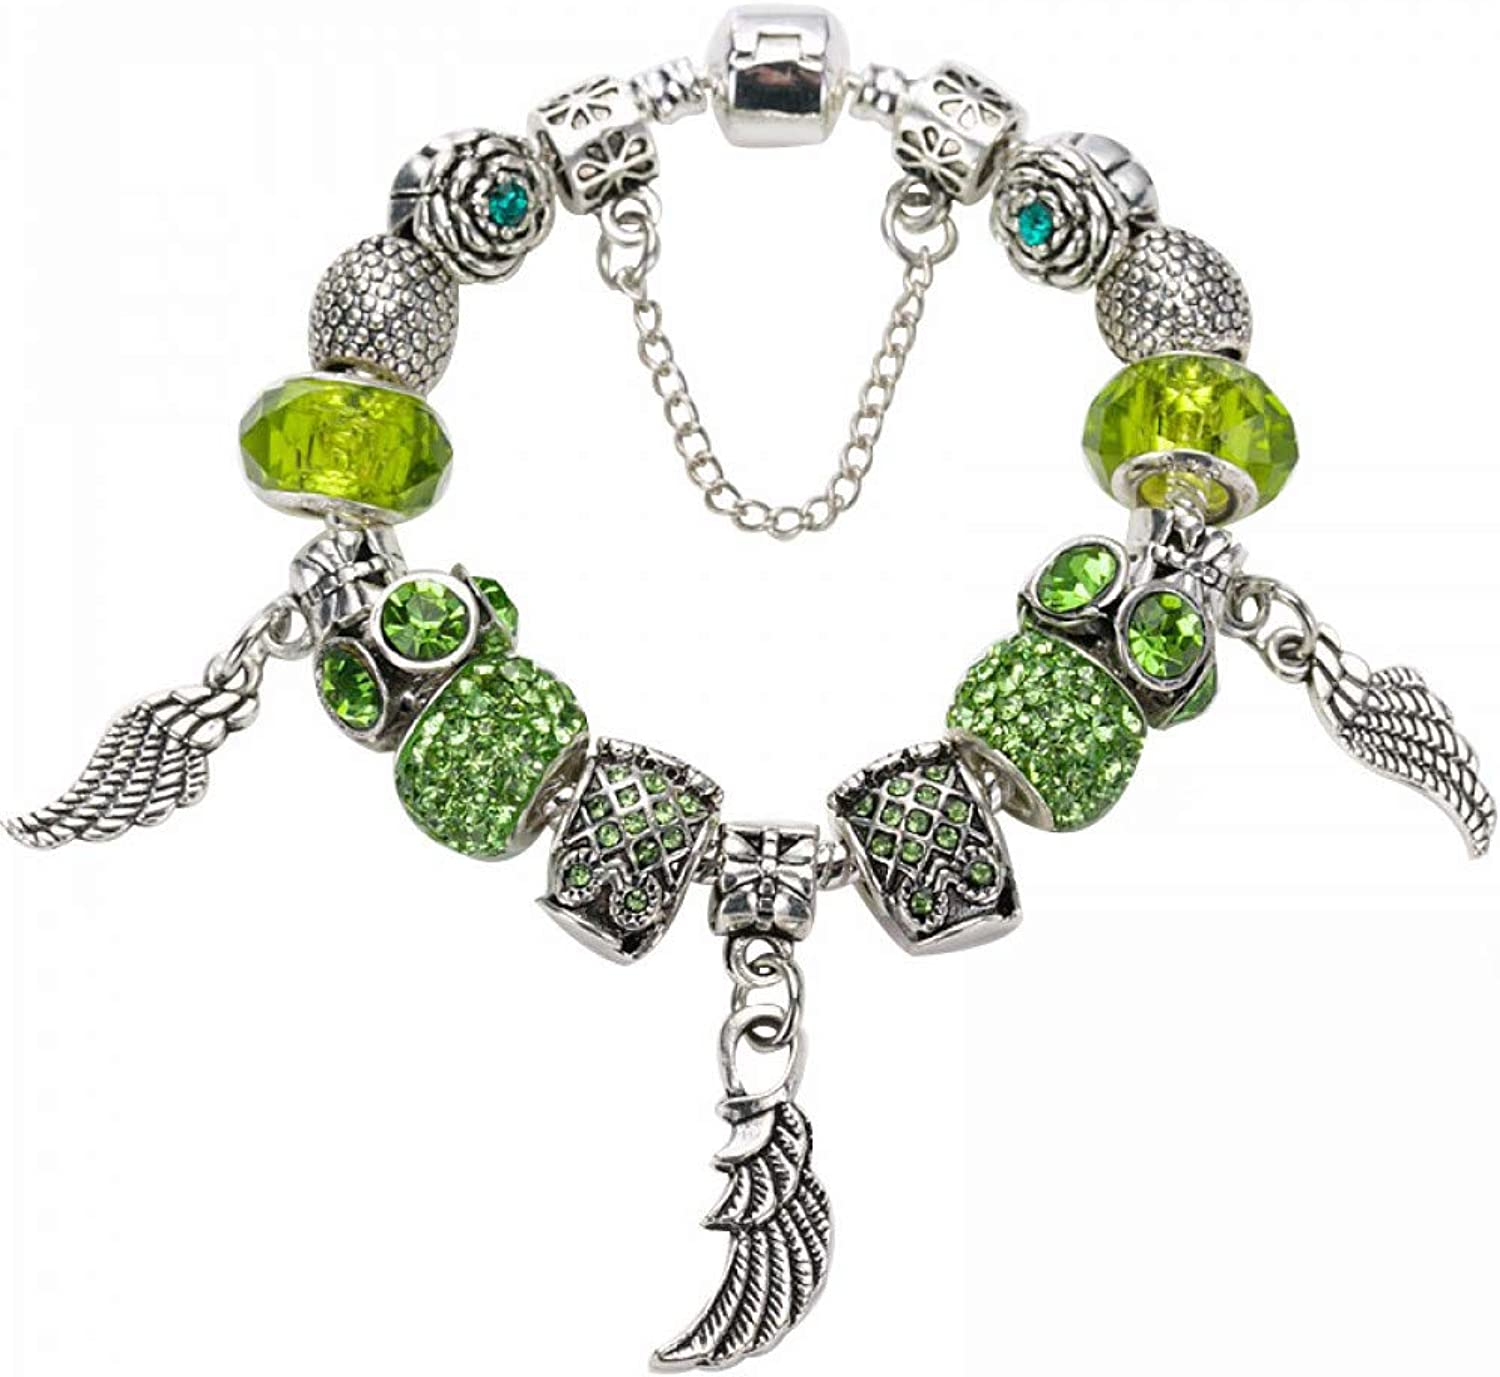 GSYDSZ Silver Plated Charm Bracelets with Crystal&Glass Feather Dangles Fit DIY European Brand Bracelet for Women Gift